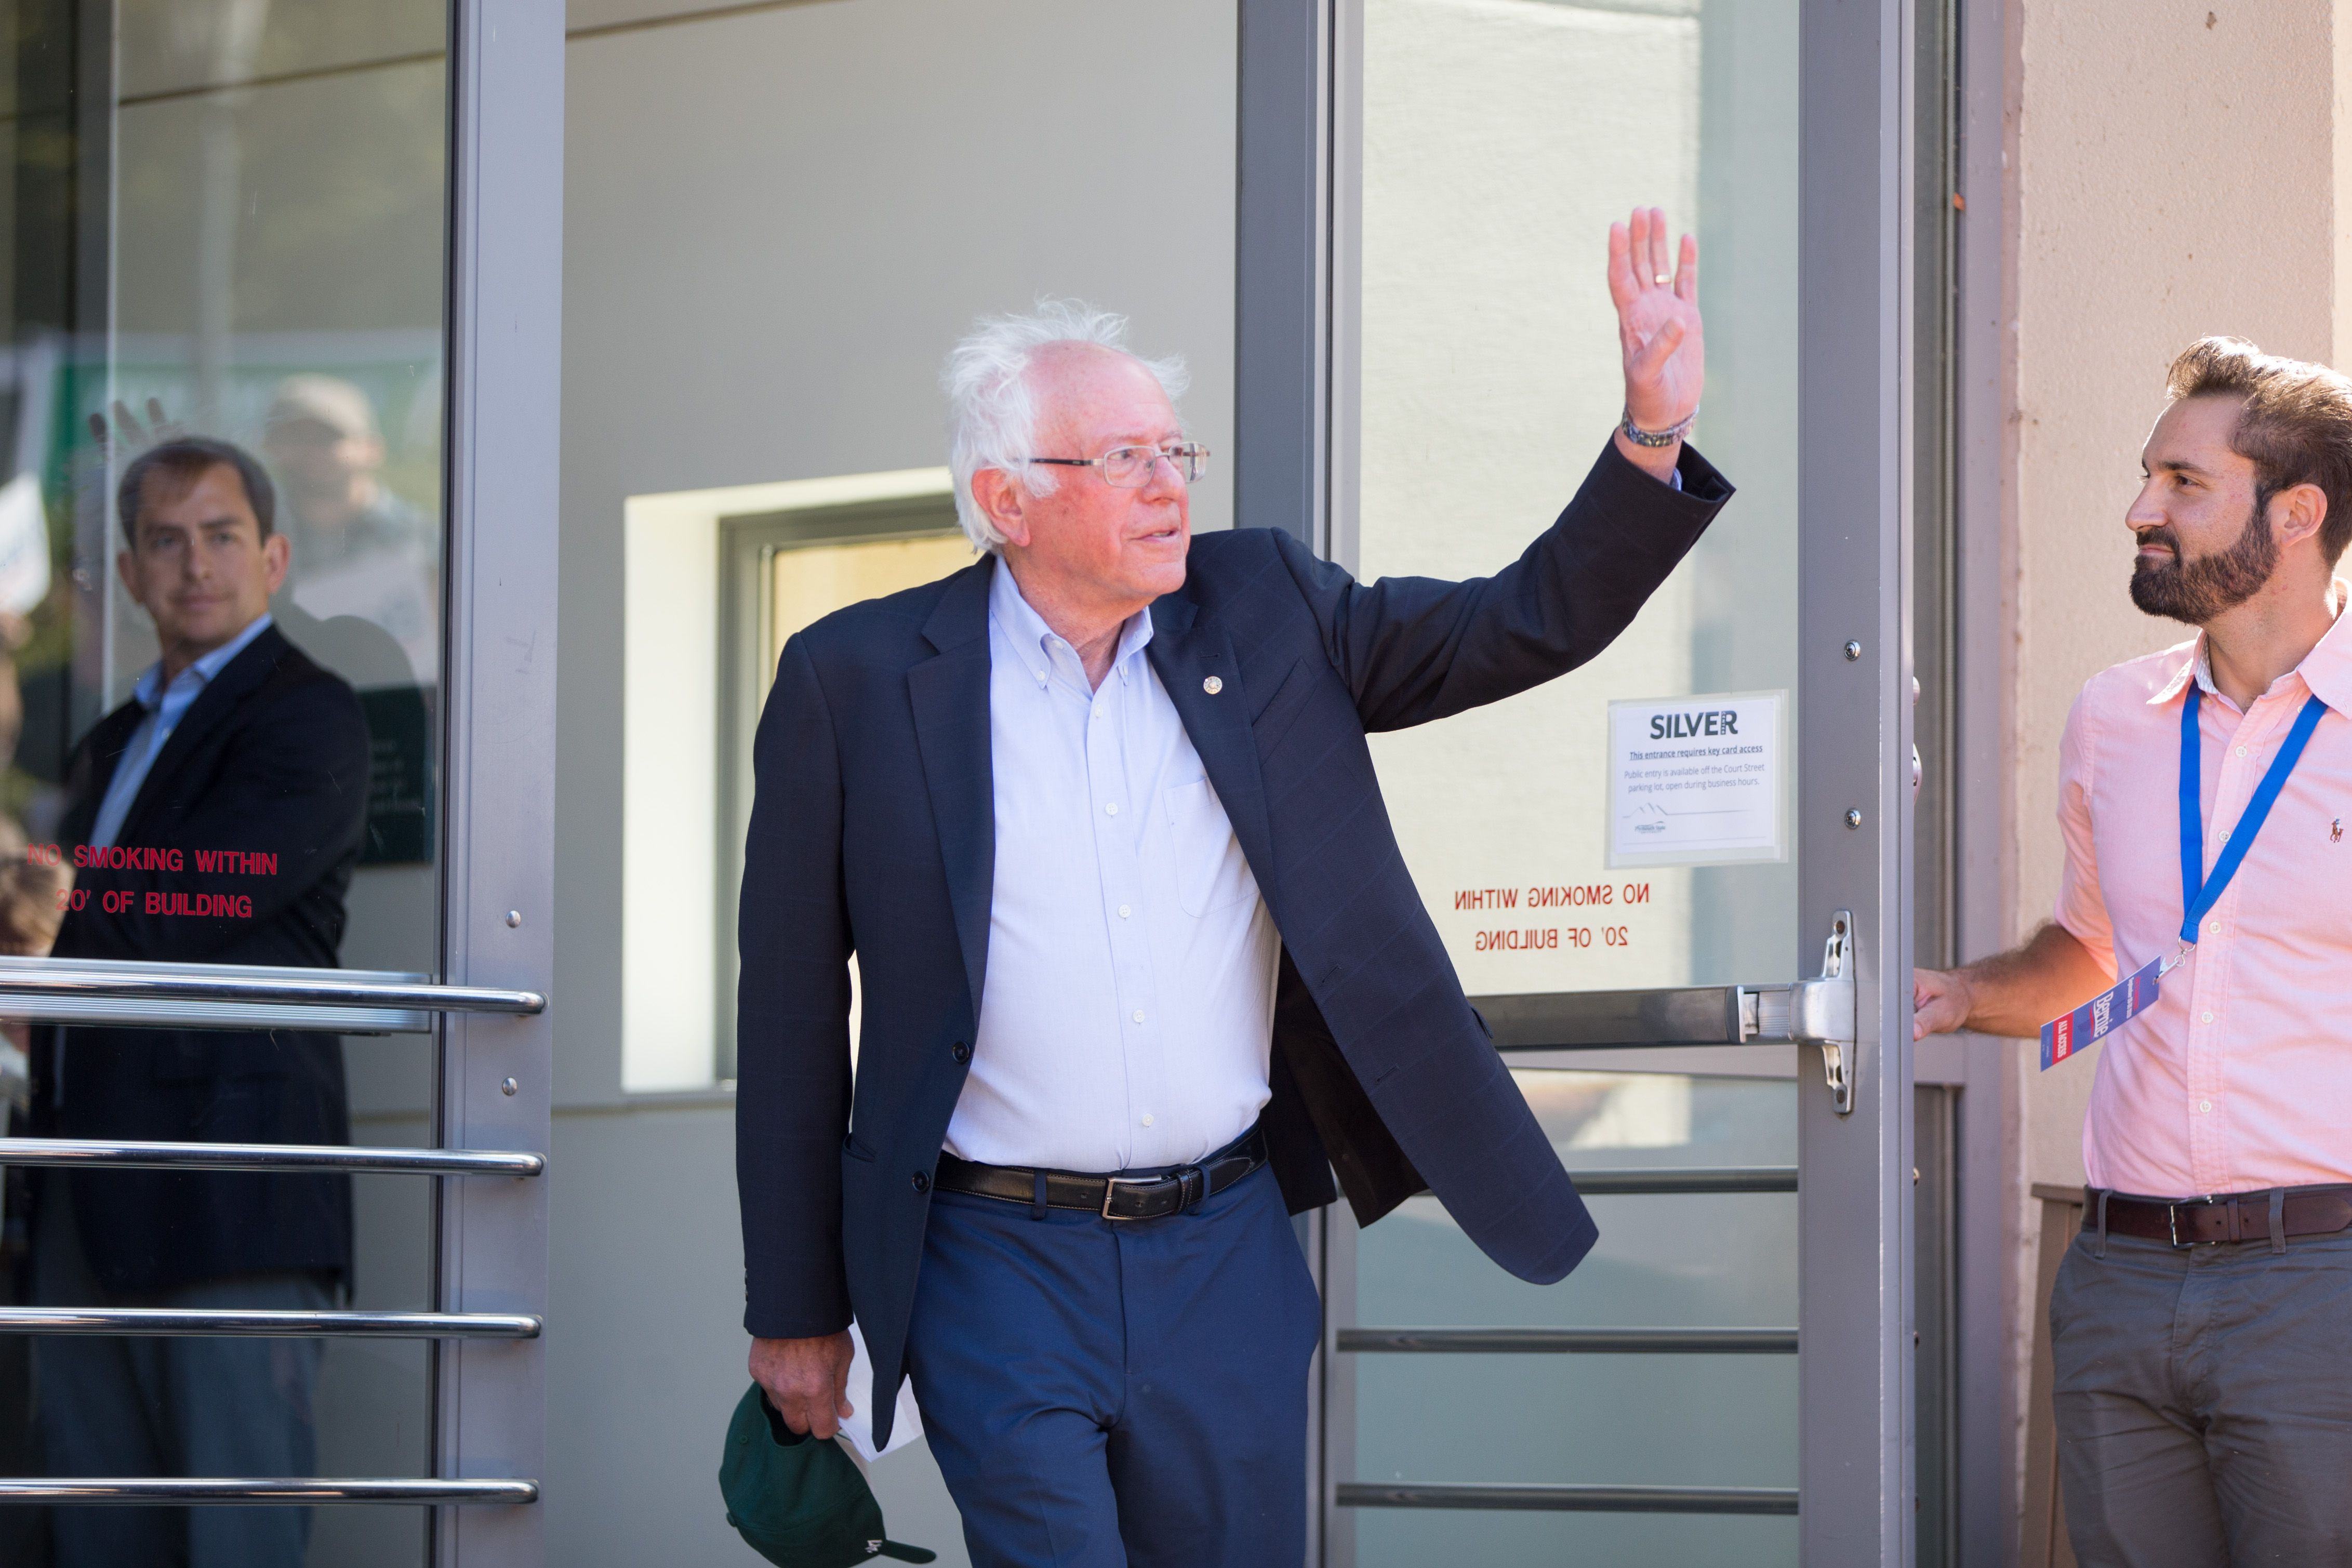 Bernie Sanders Hospitalized for Heart Trouble, Suspends Campaign Events